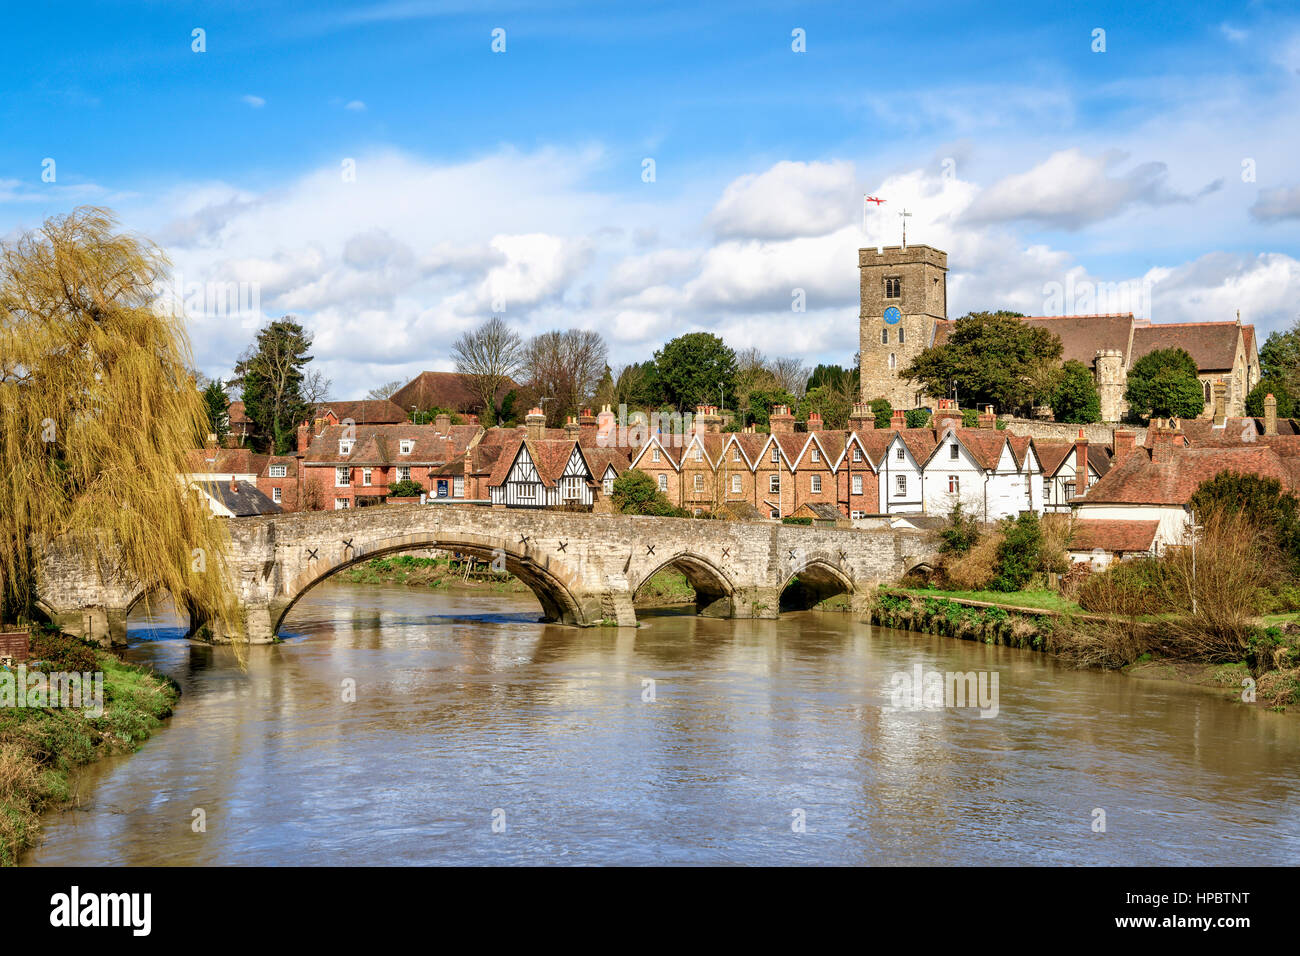 Aylesford, United Kingdom - March 29th, 2016: View of Aylesford village in Kent, England with medieval bridge and - Stock Image